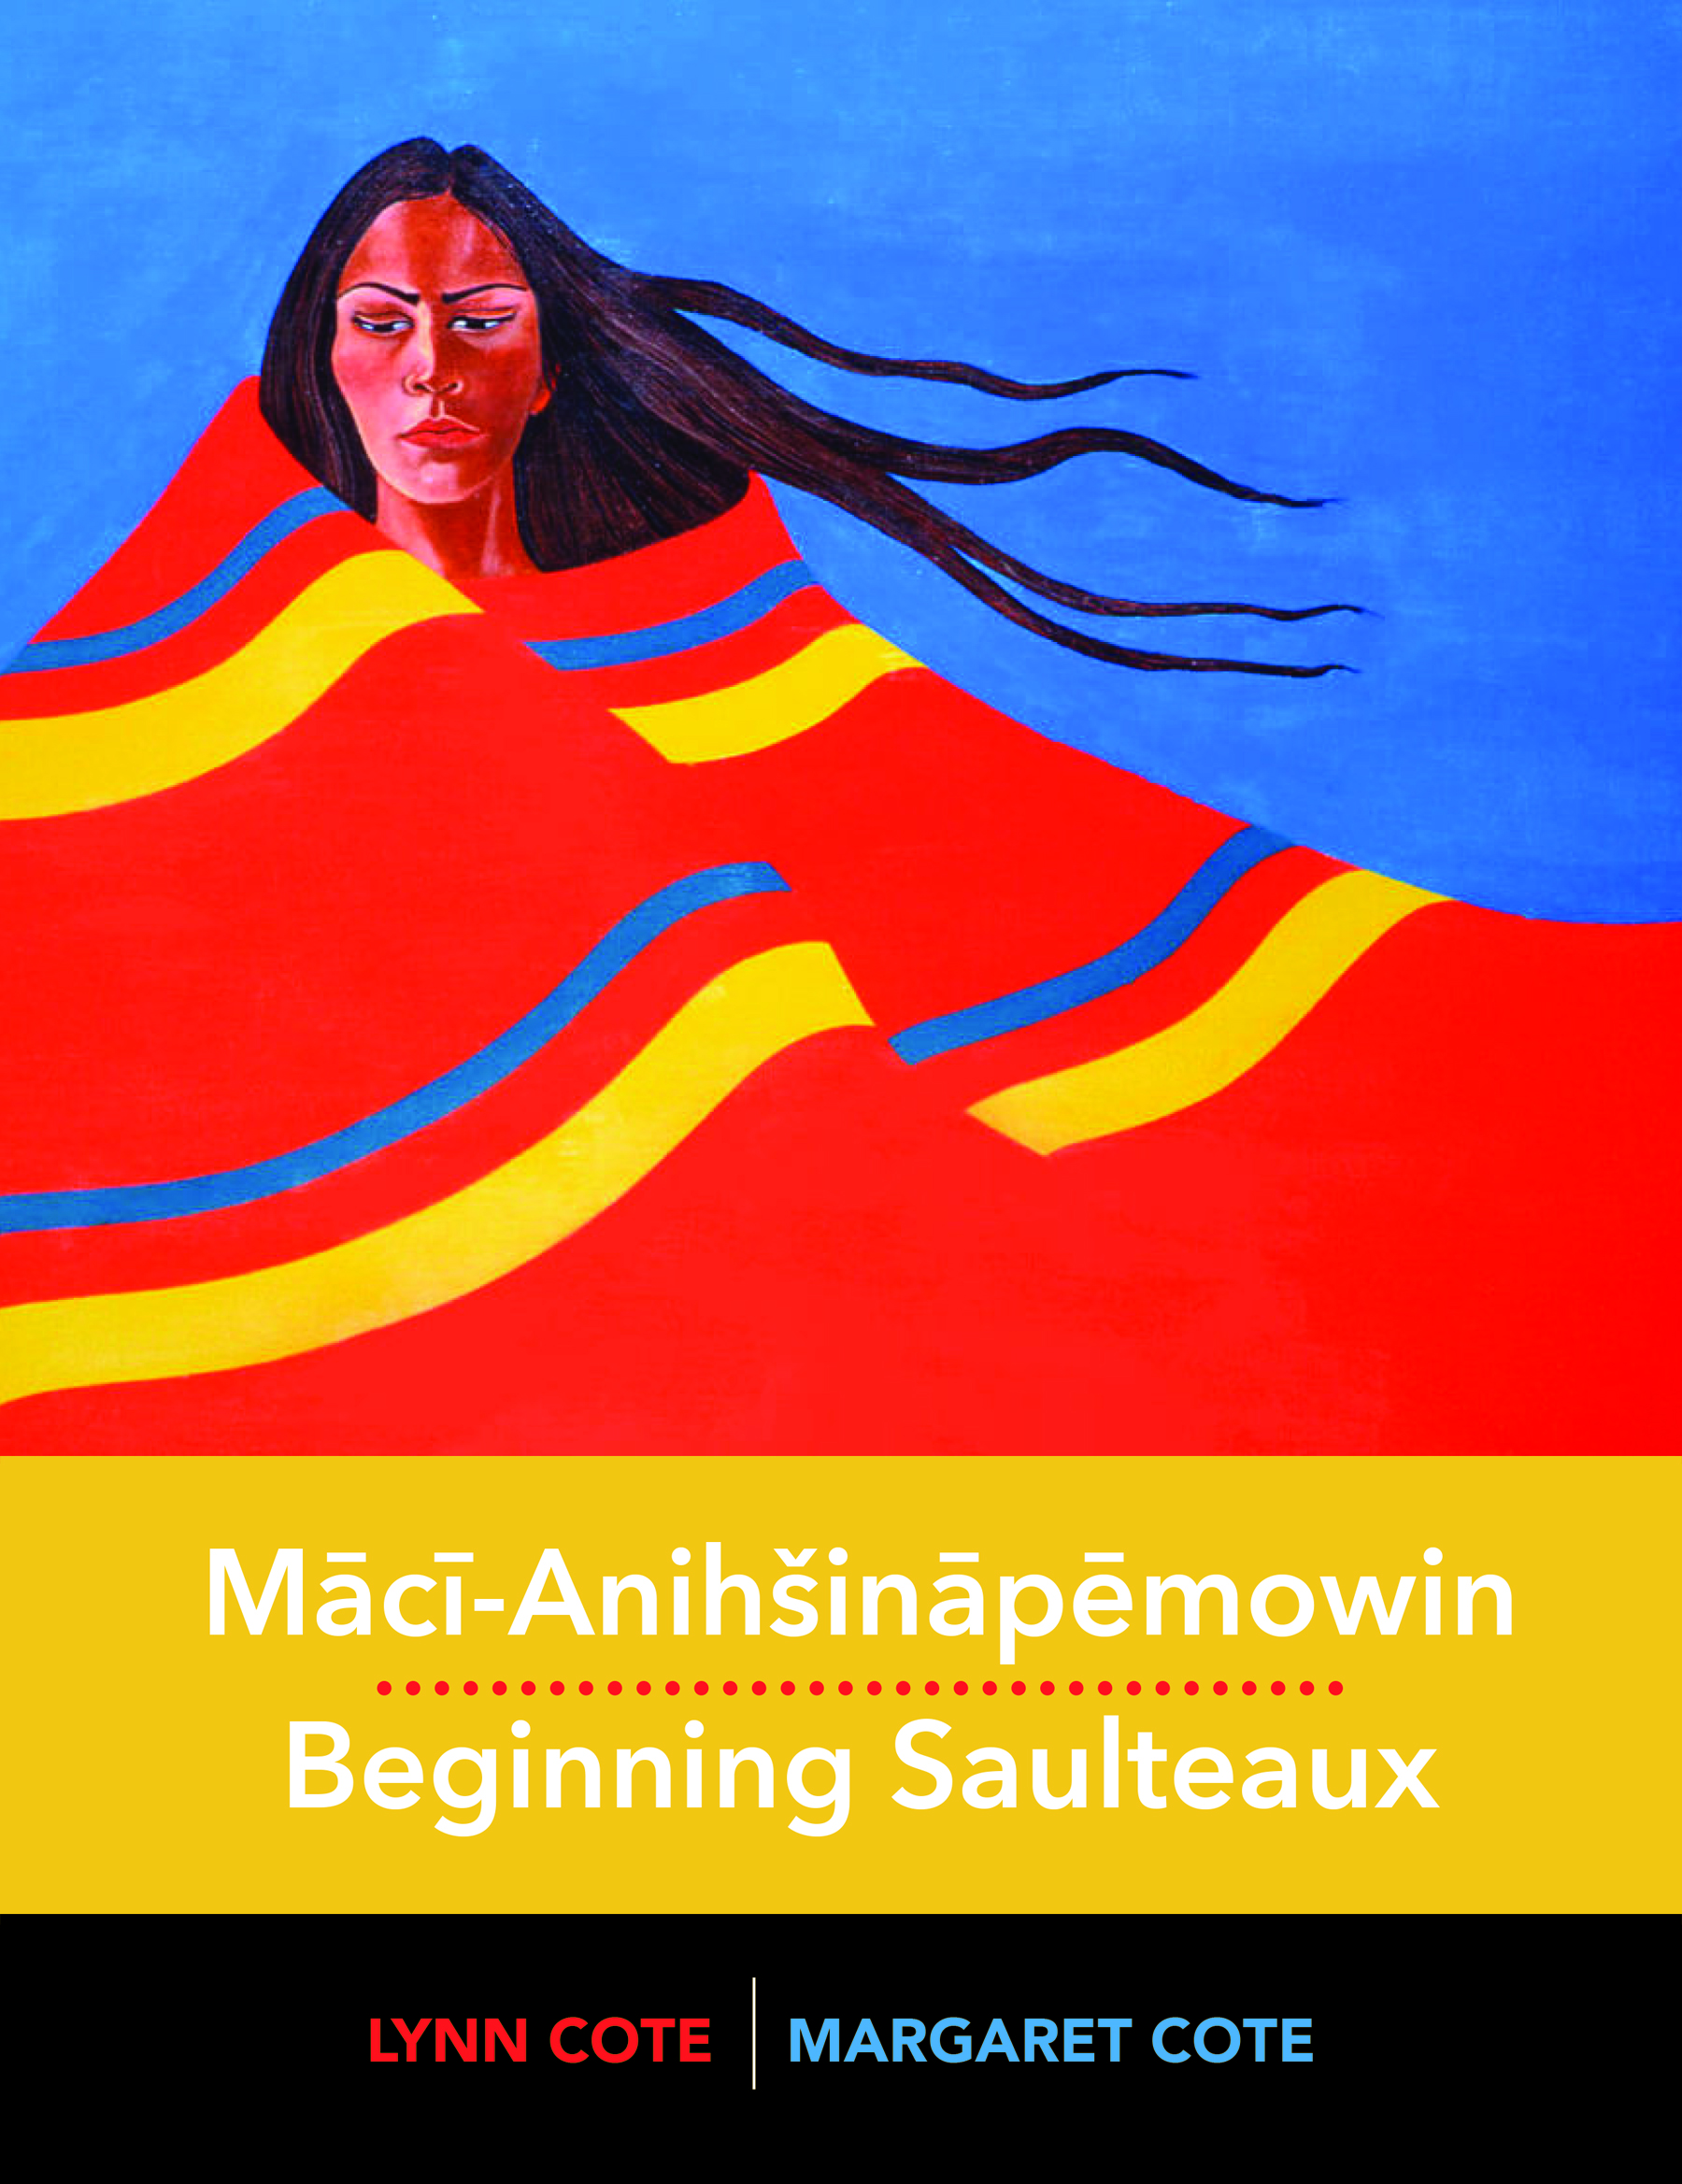 Beginning Saulteaux COVER HIGH RES